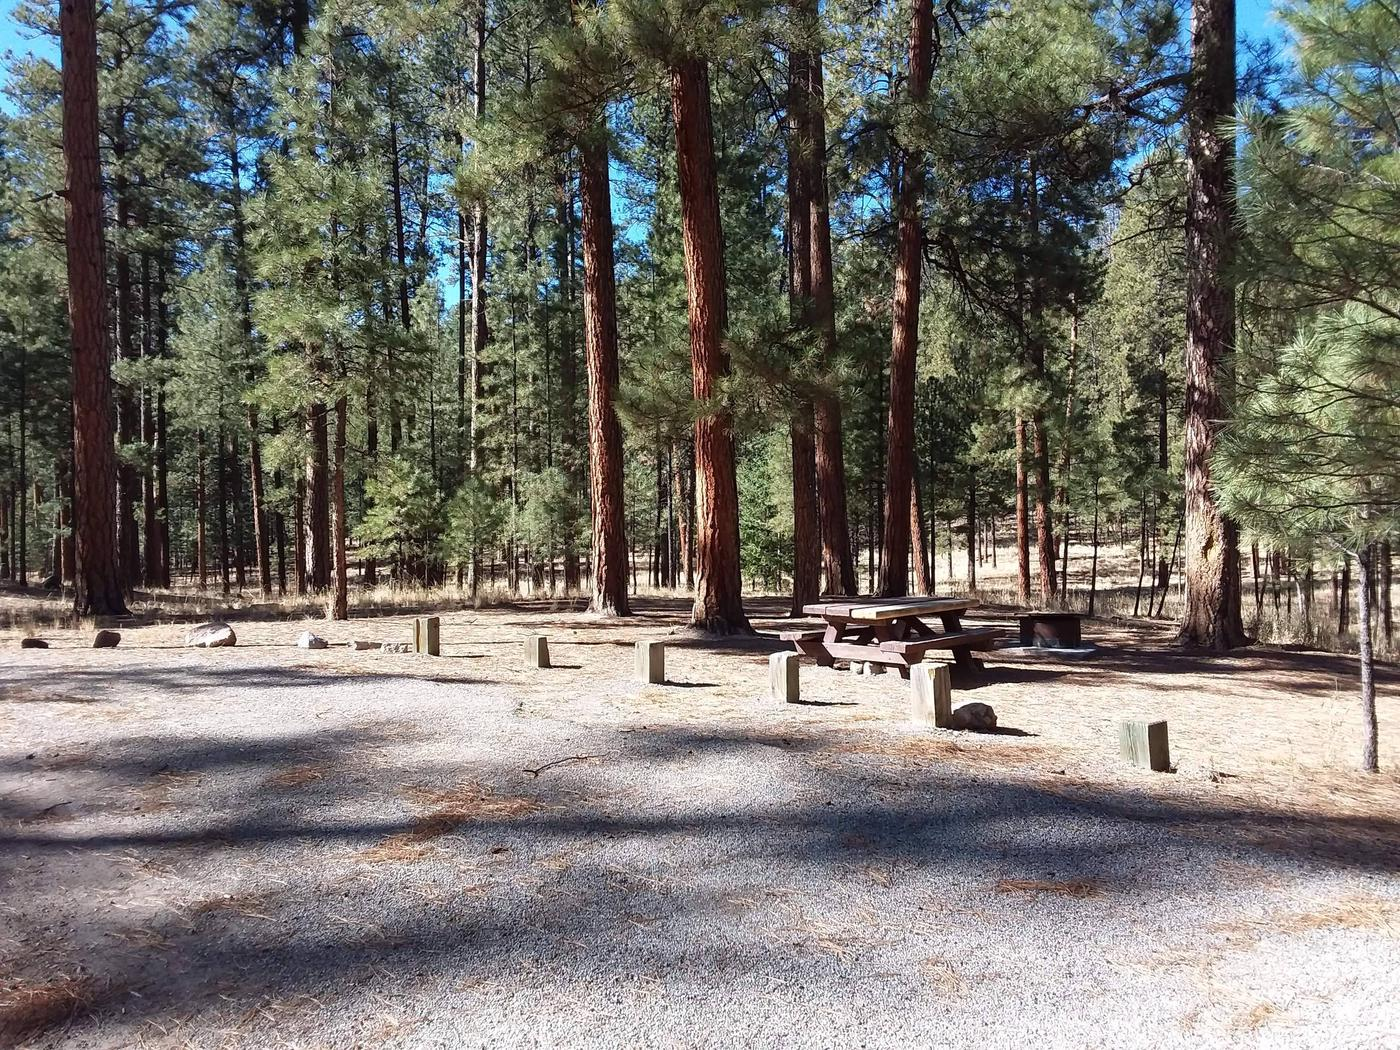 Site 12 has towering pines, a picnic table and fire ring grill combo on site.Site 12